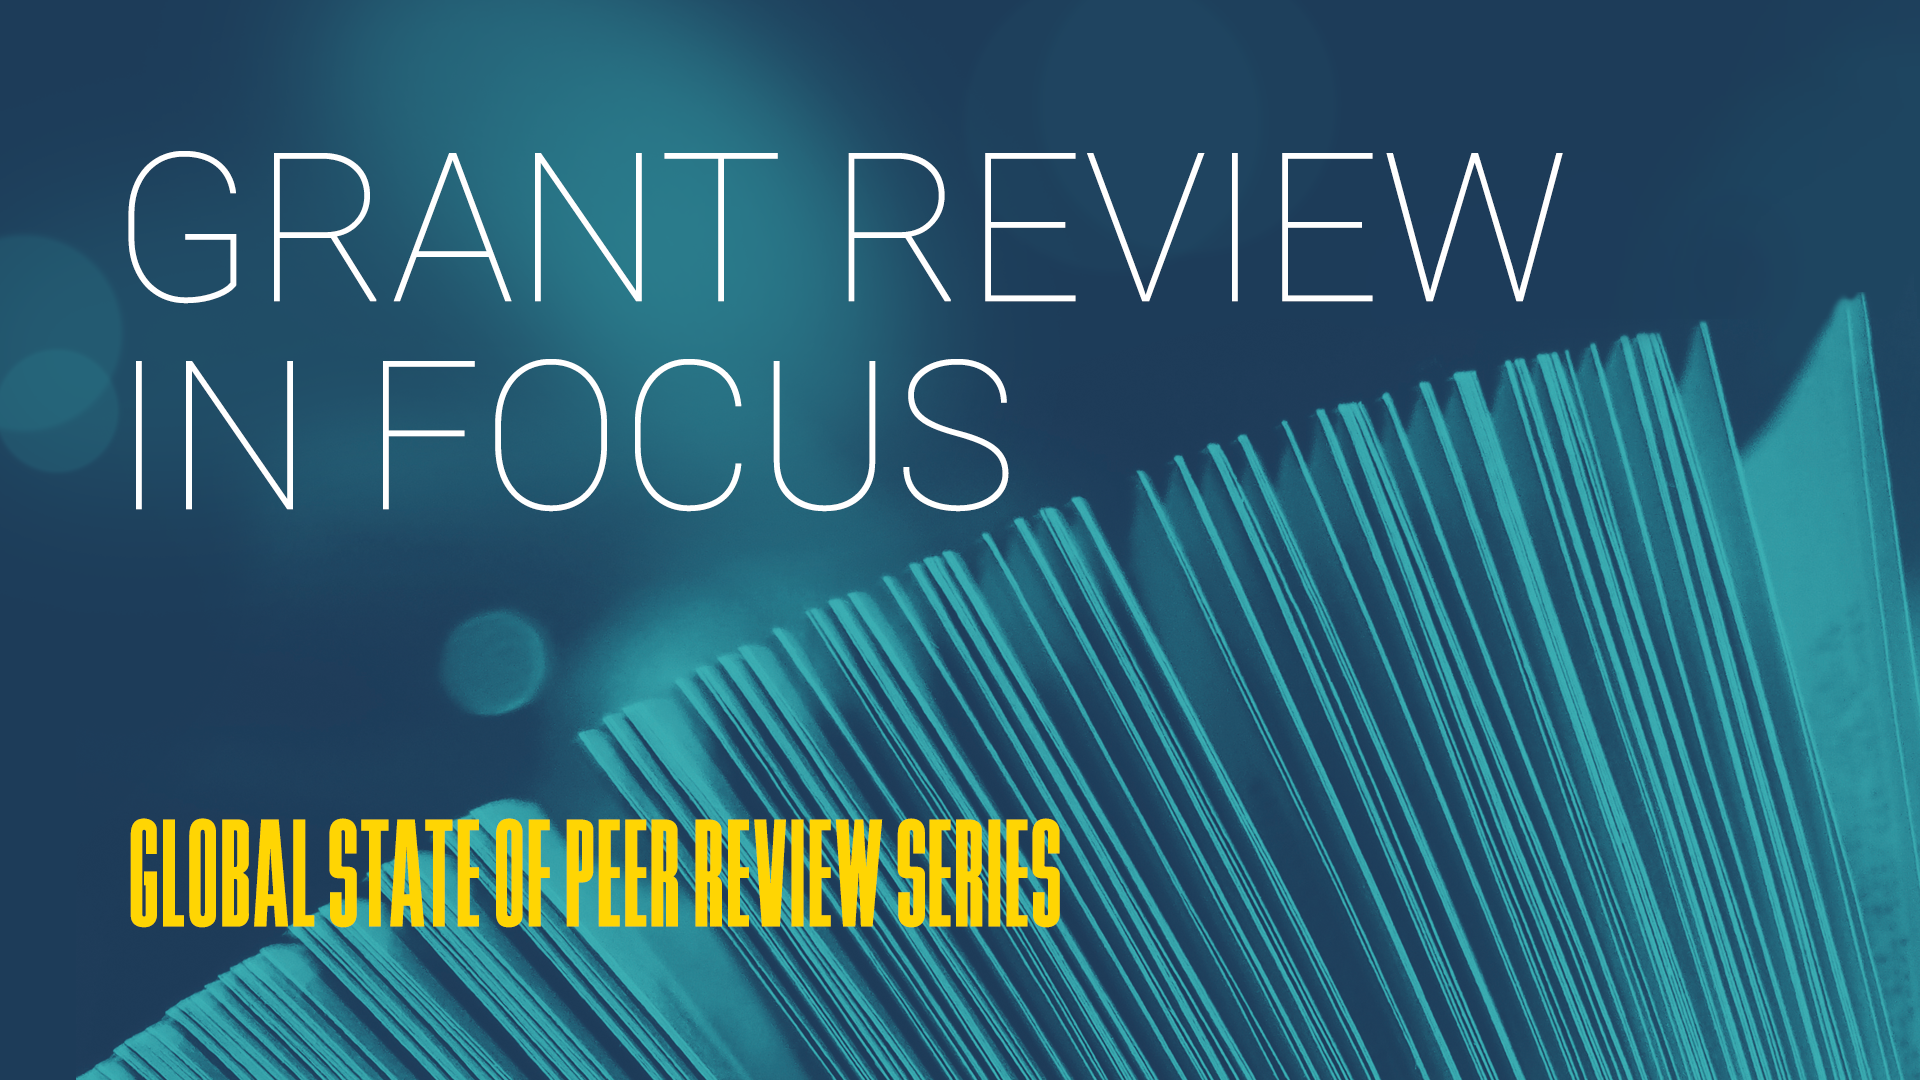 GRANT REVIEW IN FOCUS   The largest ever study of grant peer review. We ask the big questions and reveal key findings to expose the future of the system. Get the insight here!   Learn more